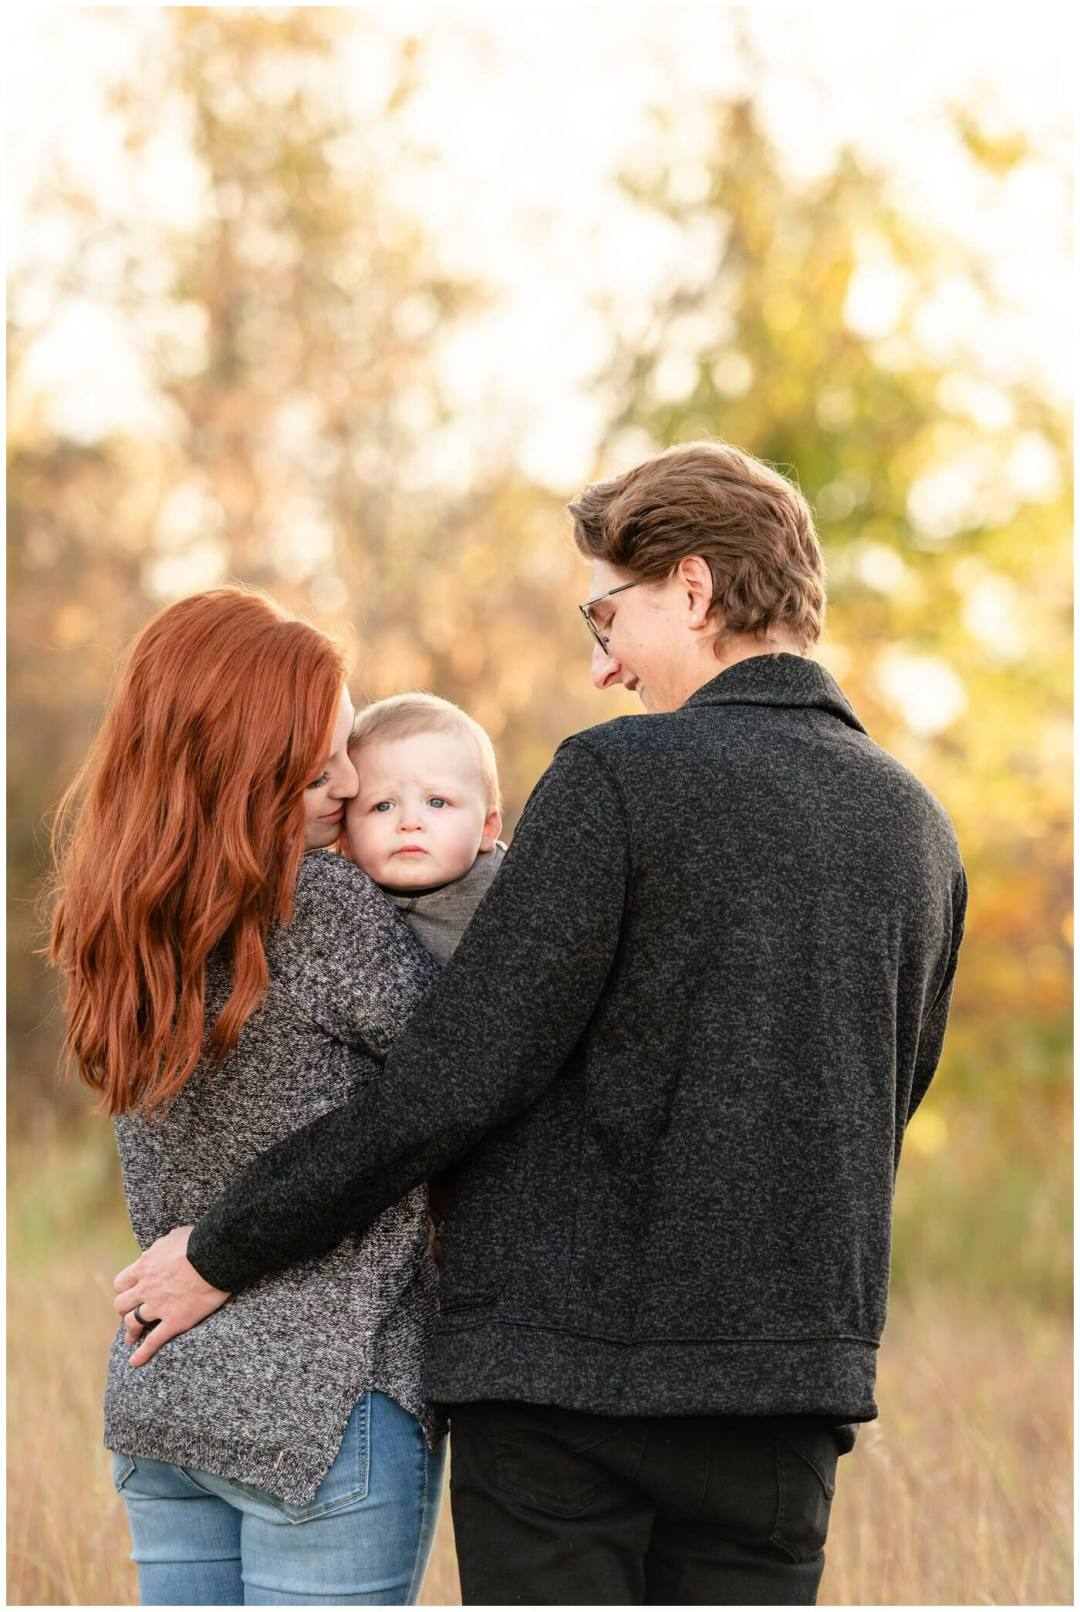 Regina Family Photography - McFie family - 006 - Child not interested in photos